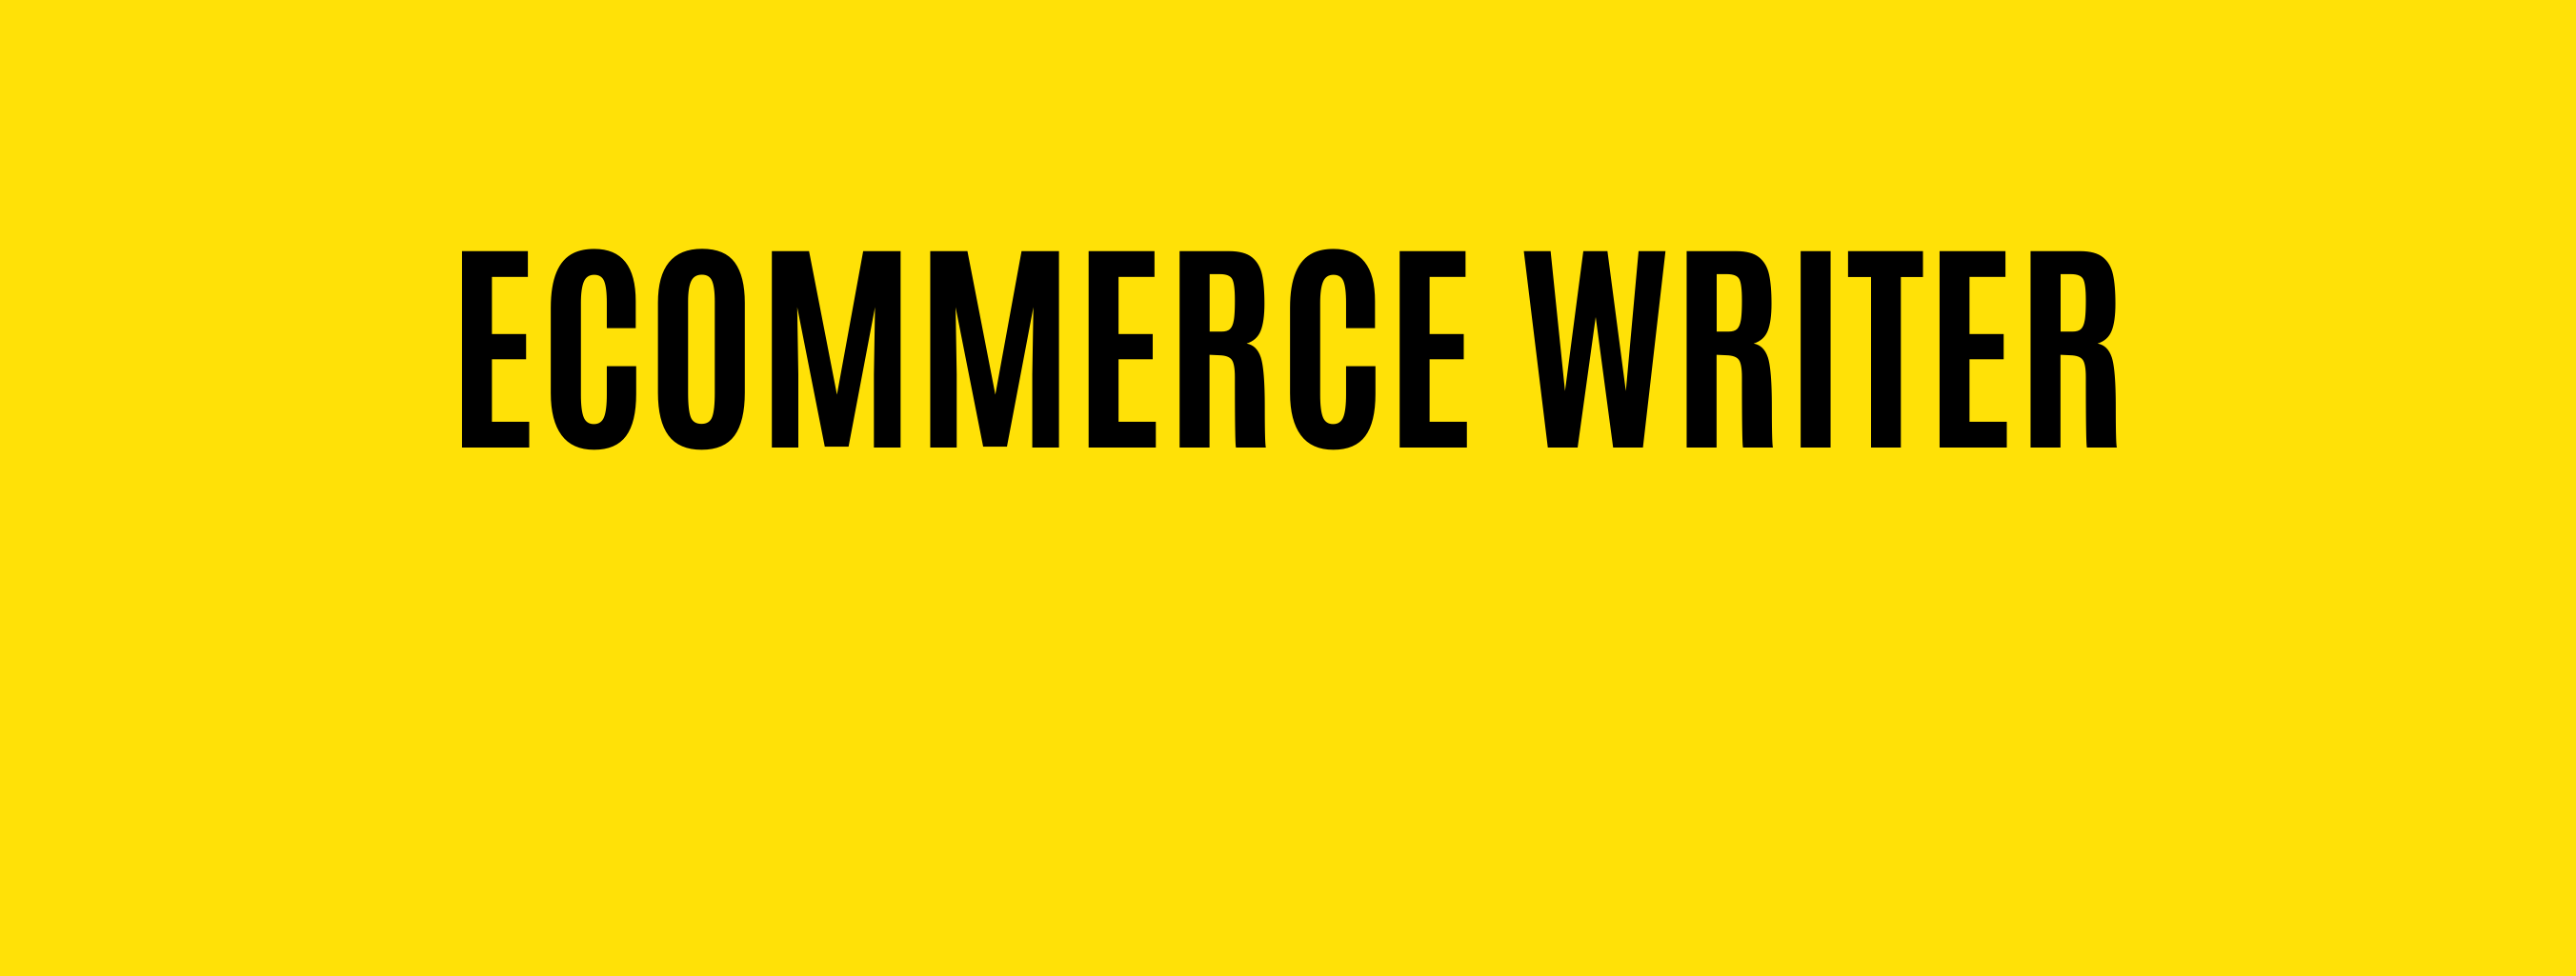 Hire Ecommerce Writers